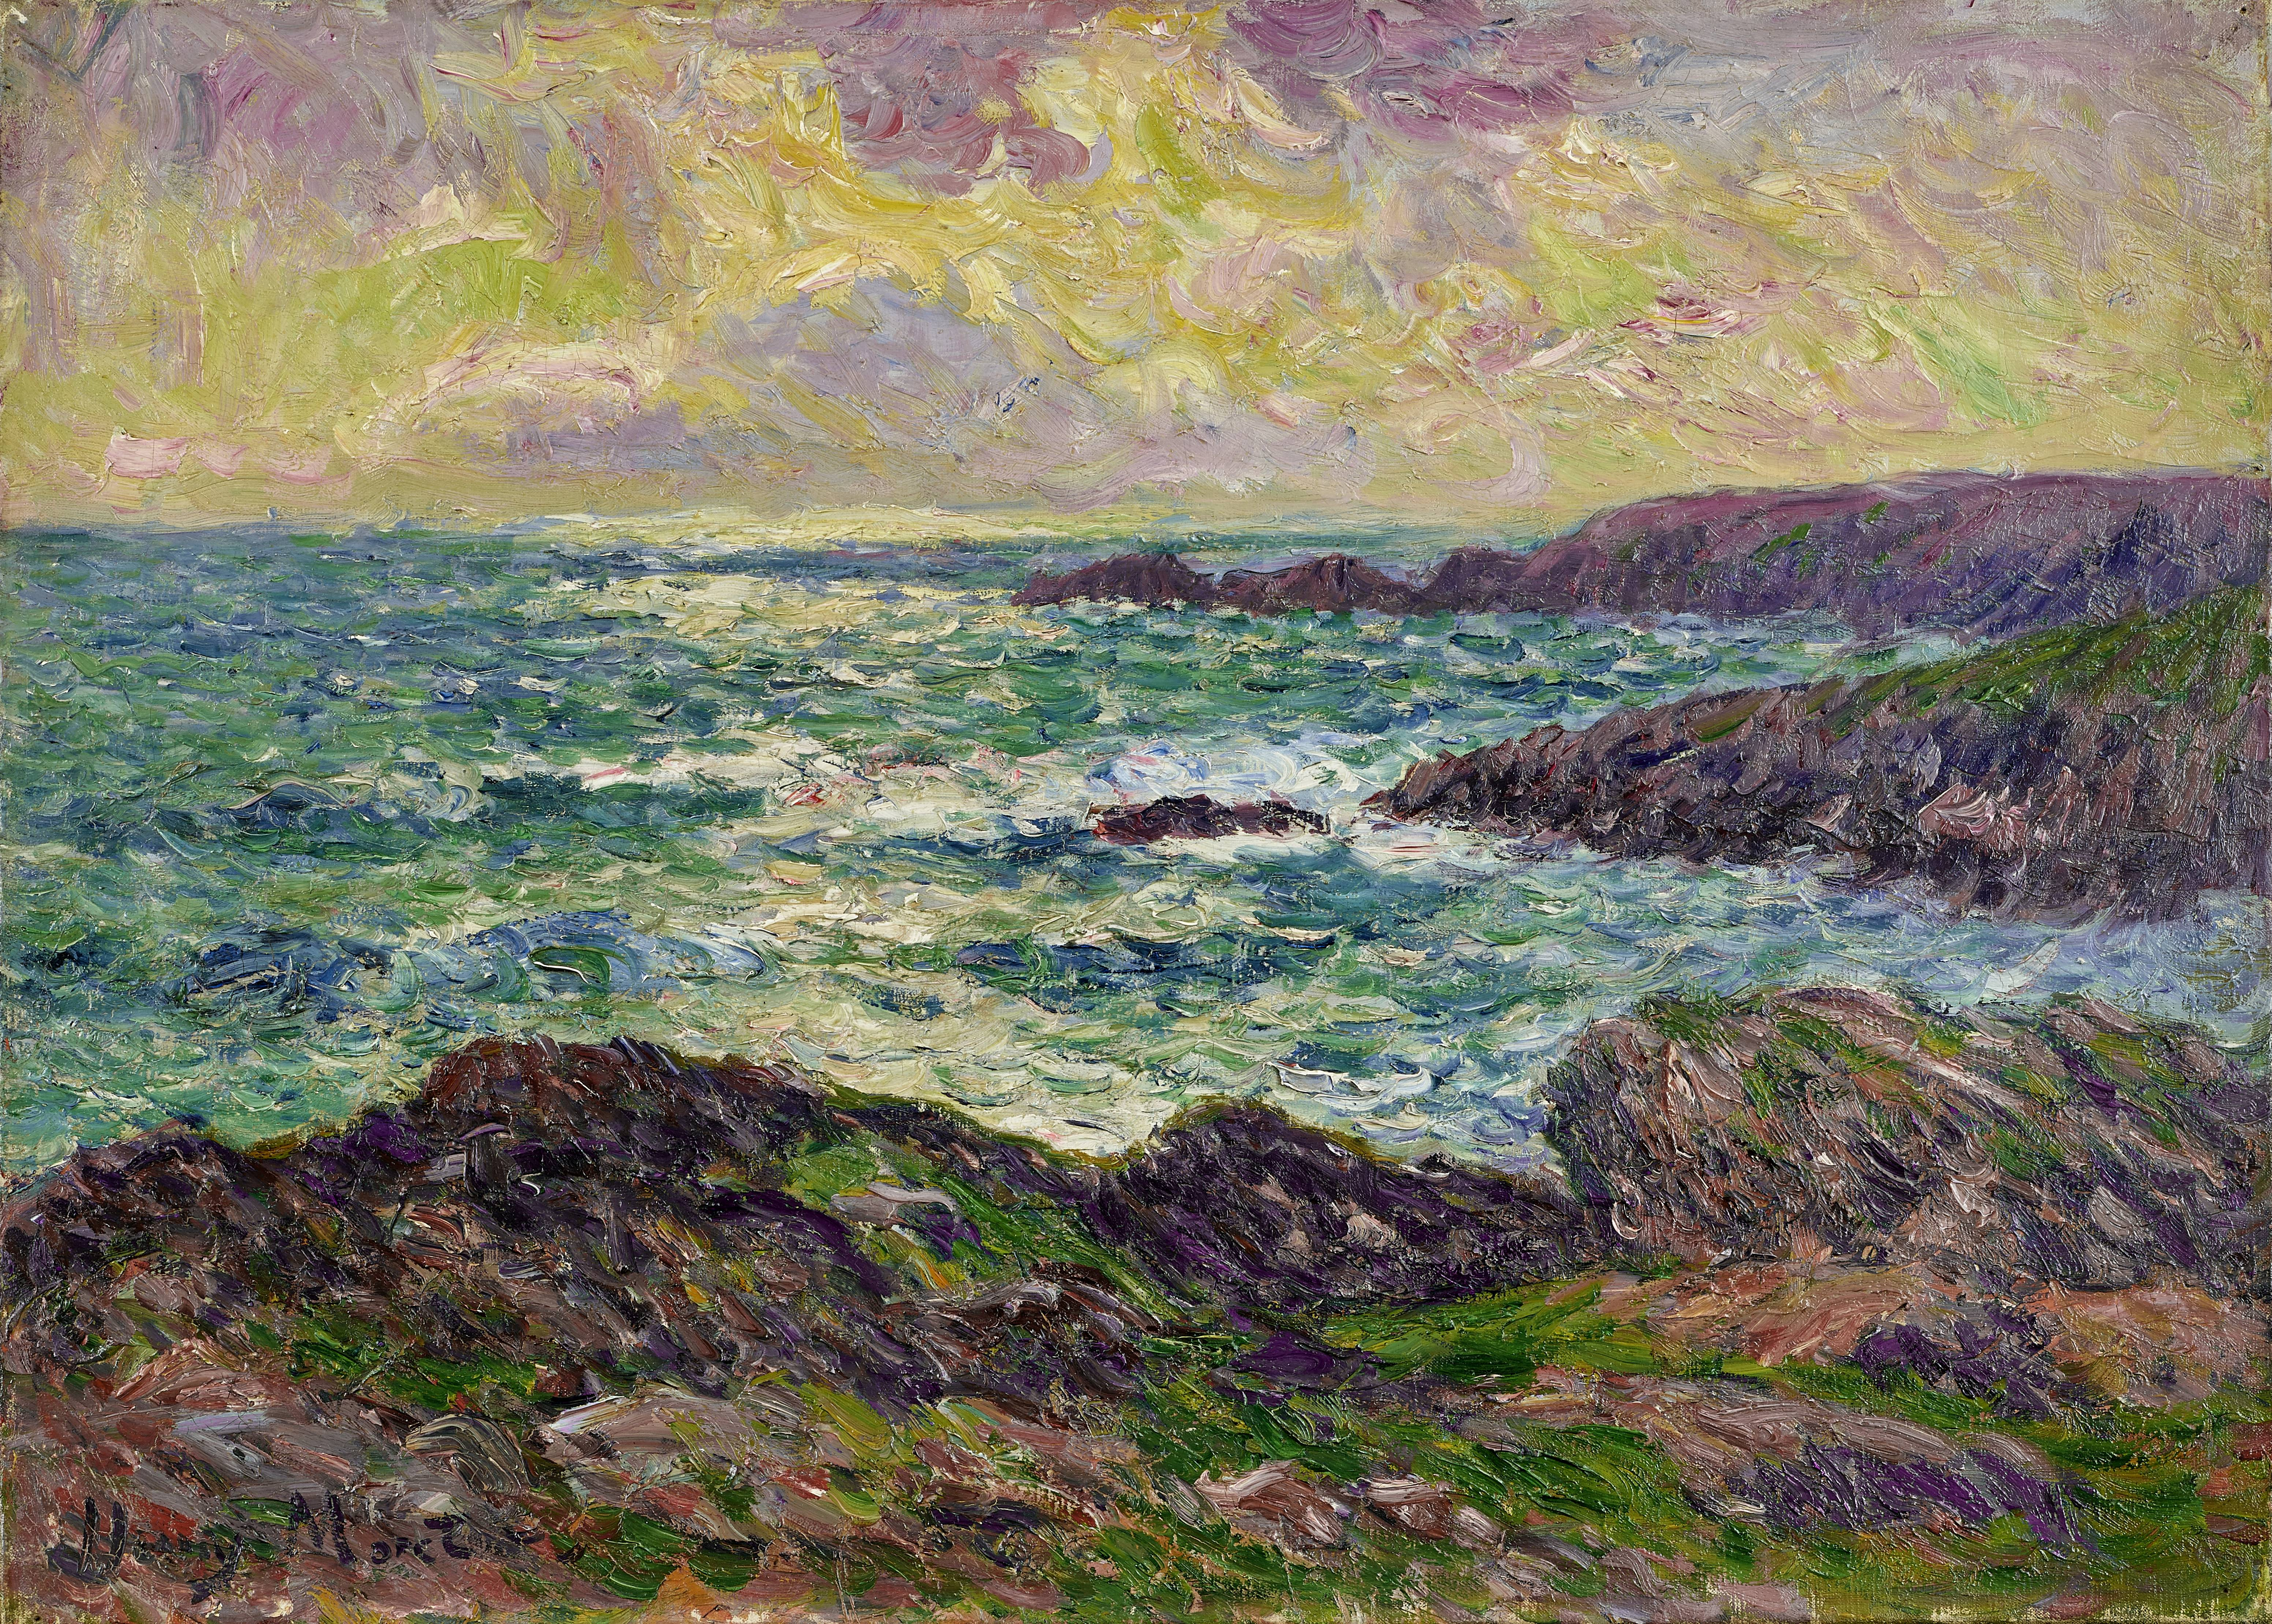 Lot 15 - HENRY MORET (1856-1913) Paysage marin 17 3/8 x 24 in (44.2 x 60.9 cm) (Painted in 1902)